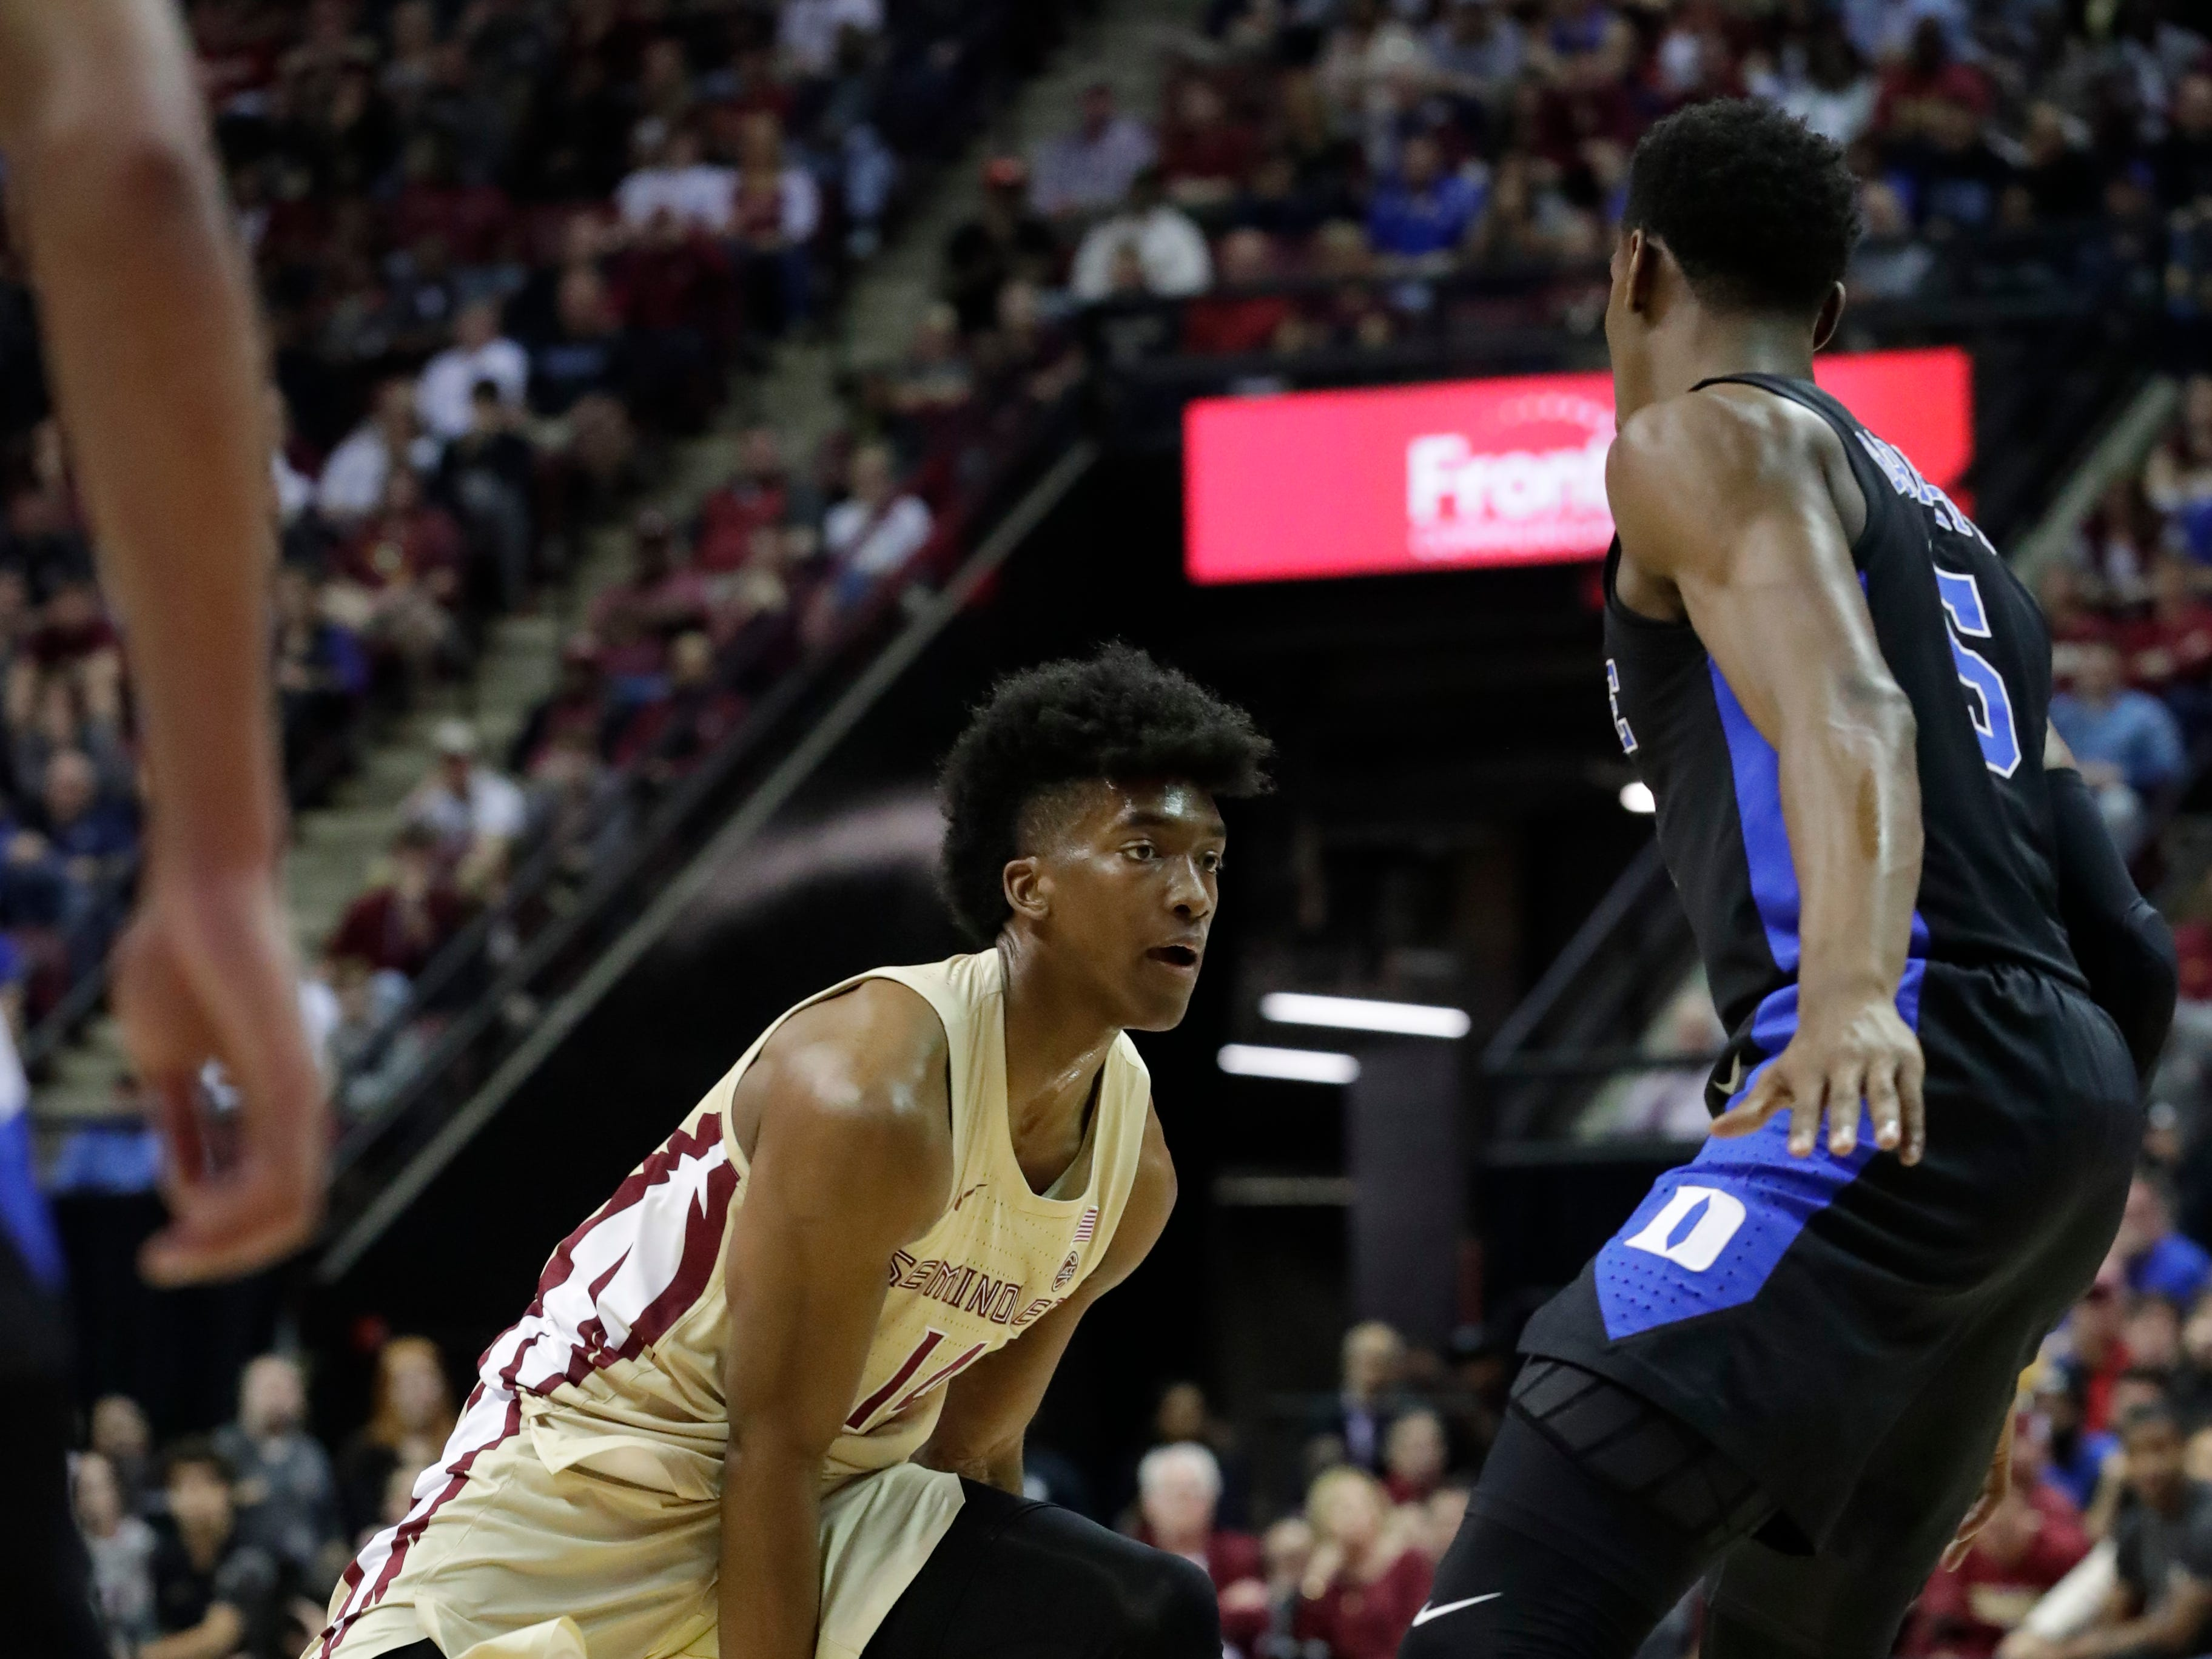 Florida State Seminoles guard Terance Mann (14) dribbles the ball between his legs while looking for a teammate to pass to. Ranked 13 in the ACC, the Florida State Seminoles host the number 1 team, the Duke Blue Devils, at the Tucker Civic Center, Saturday, Jan. 12, 2019.